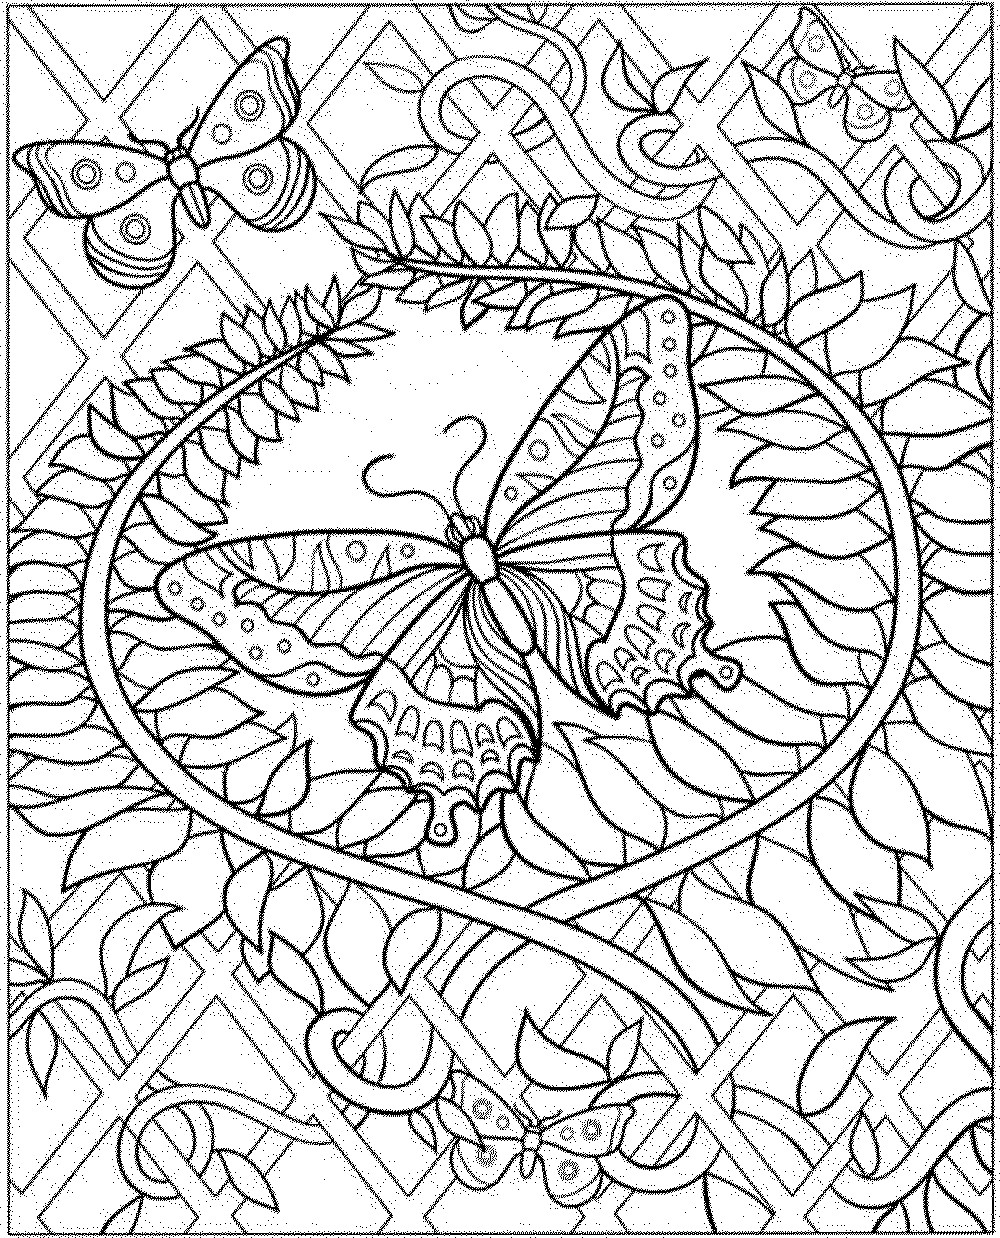 Best ideas about Detailed Coloring Pages For Adults . Save or Pin Luxury Detailed Coloring Pages to Print Now.